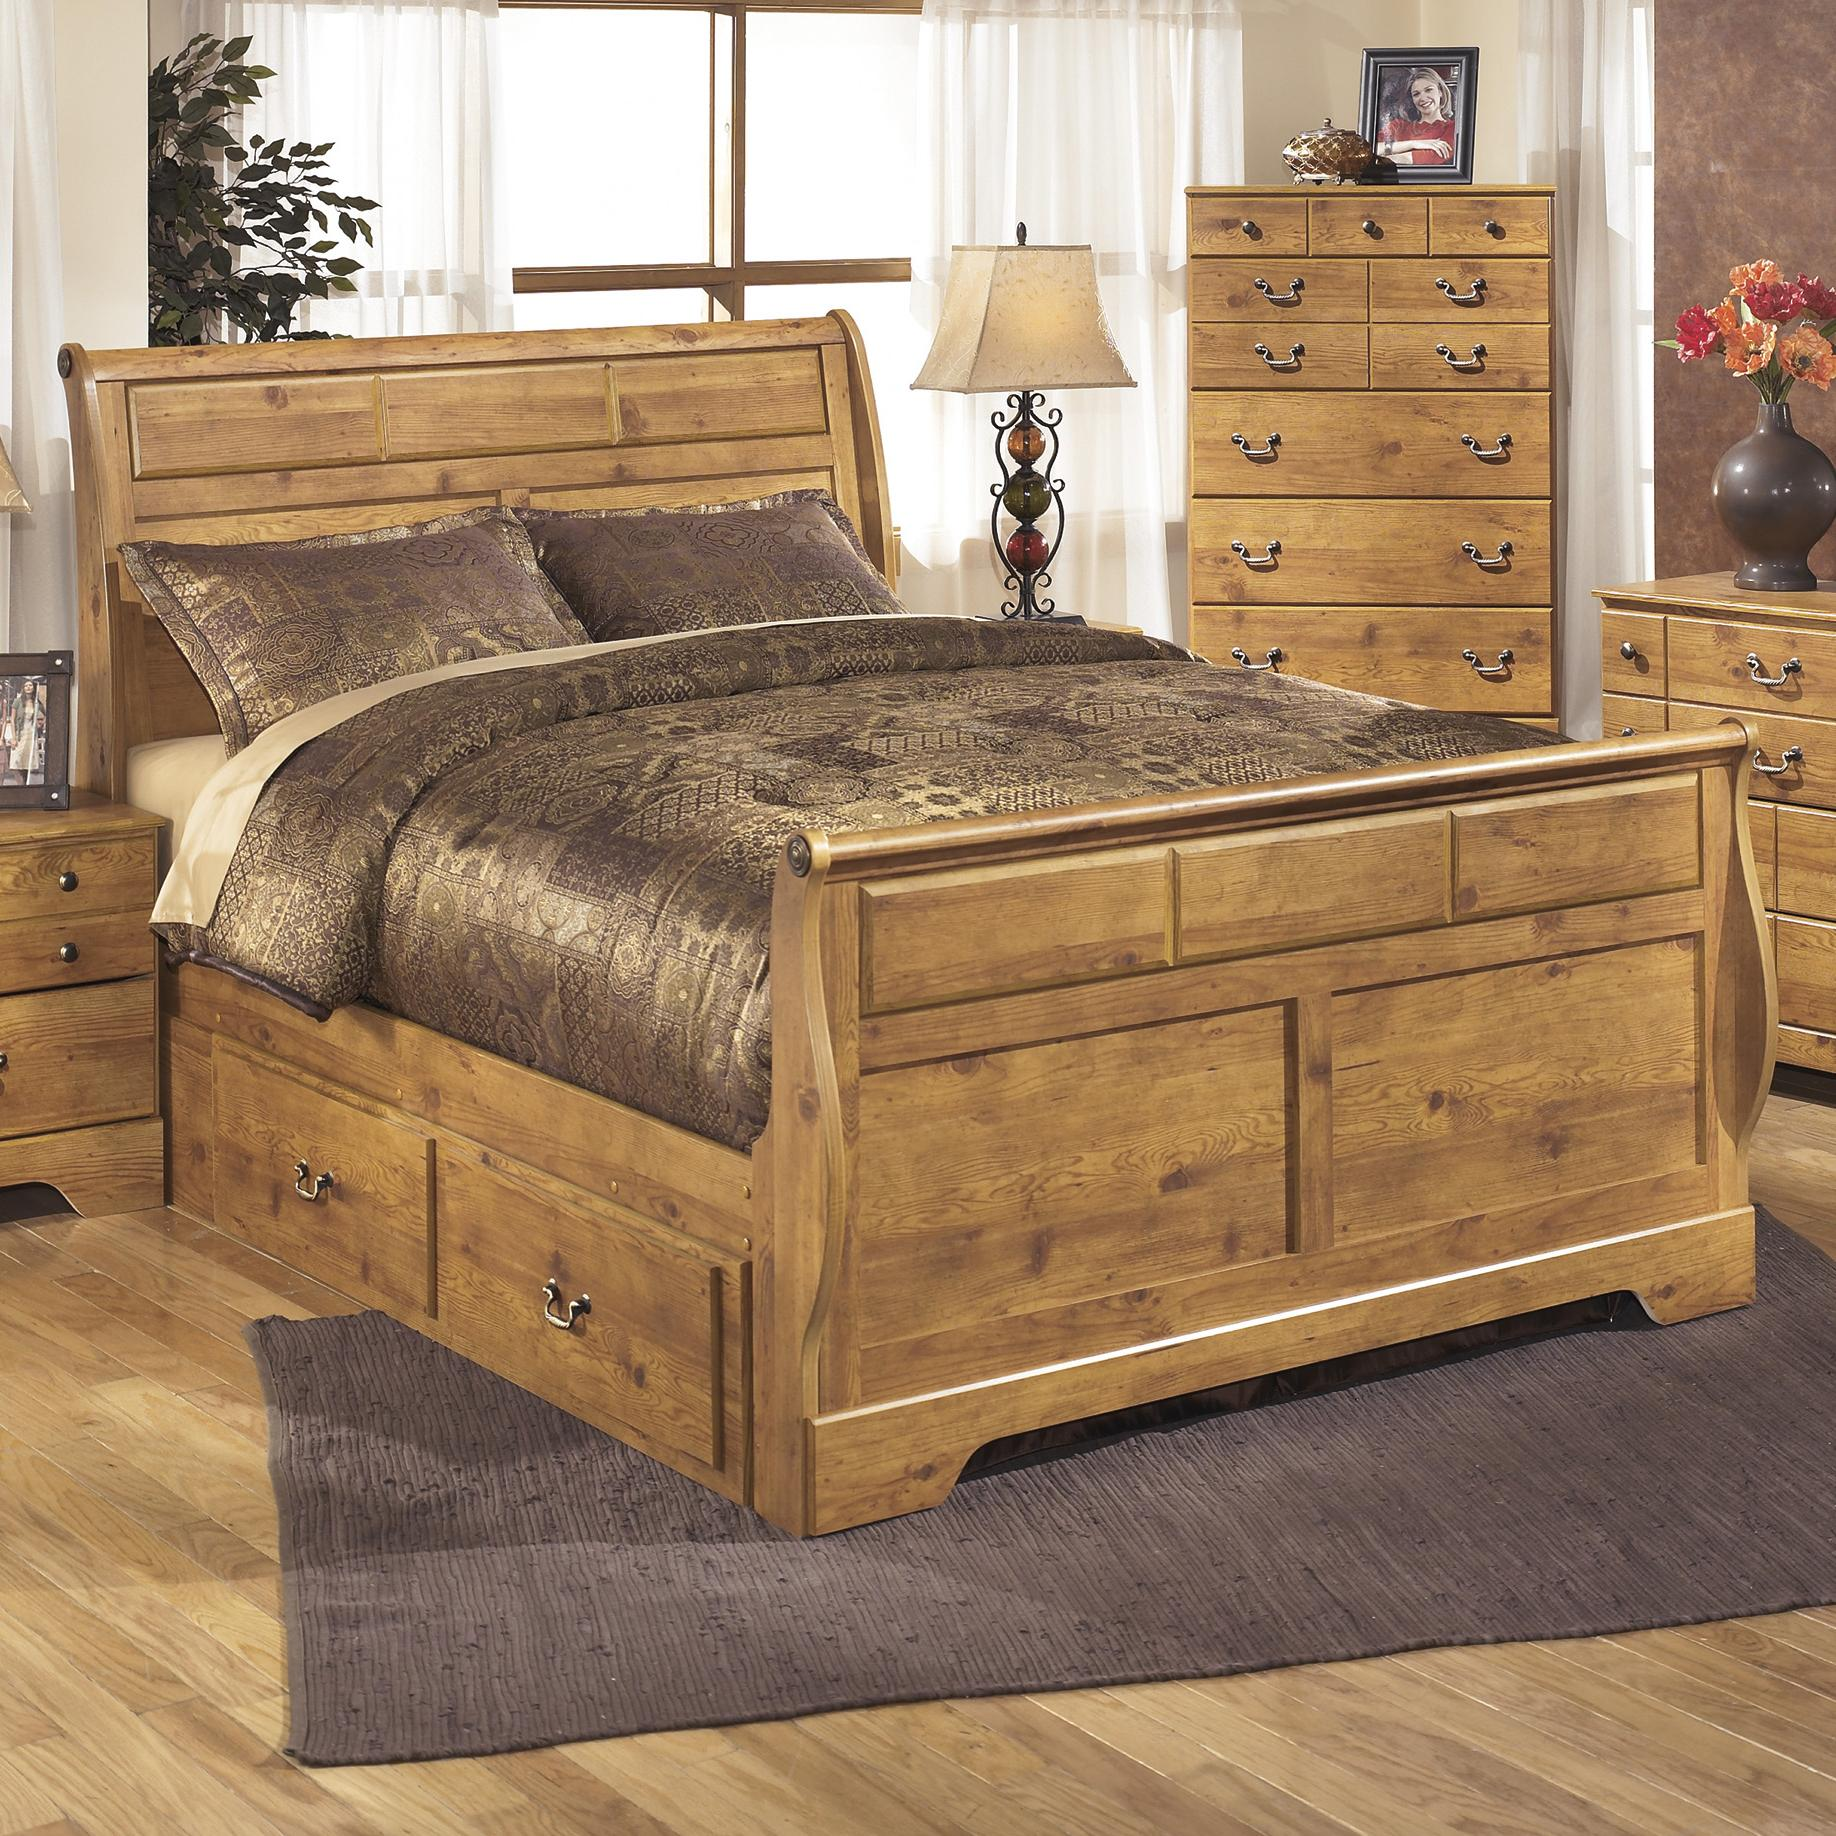 underbed size units king drawers under bed storage ujecie super range bedside frame formula p drawer